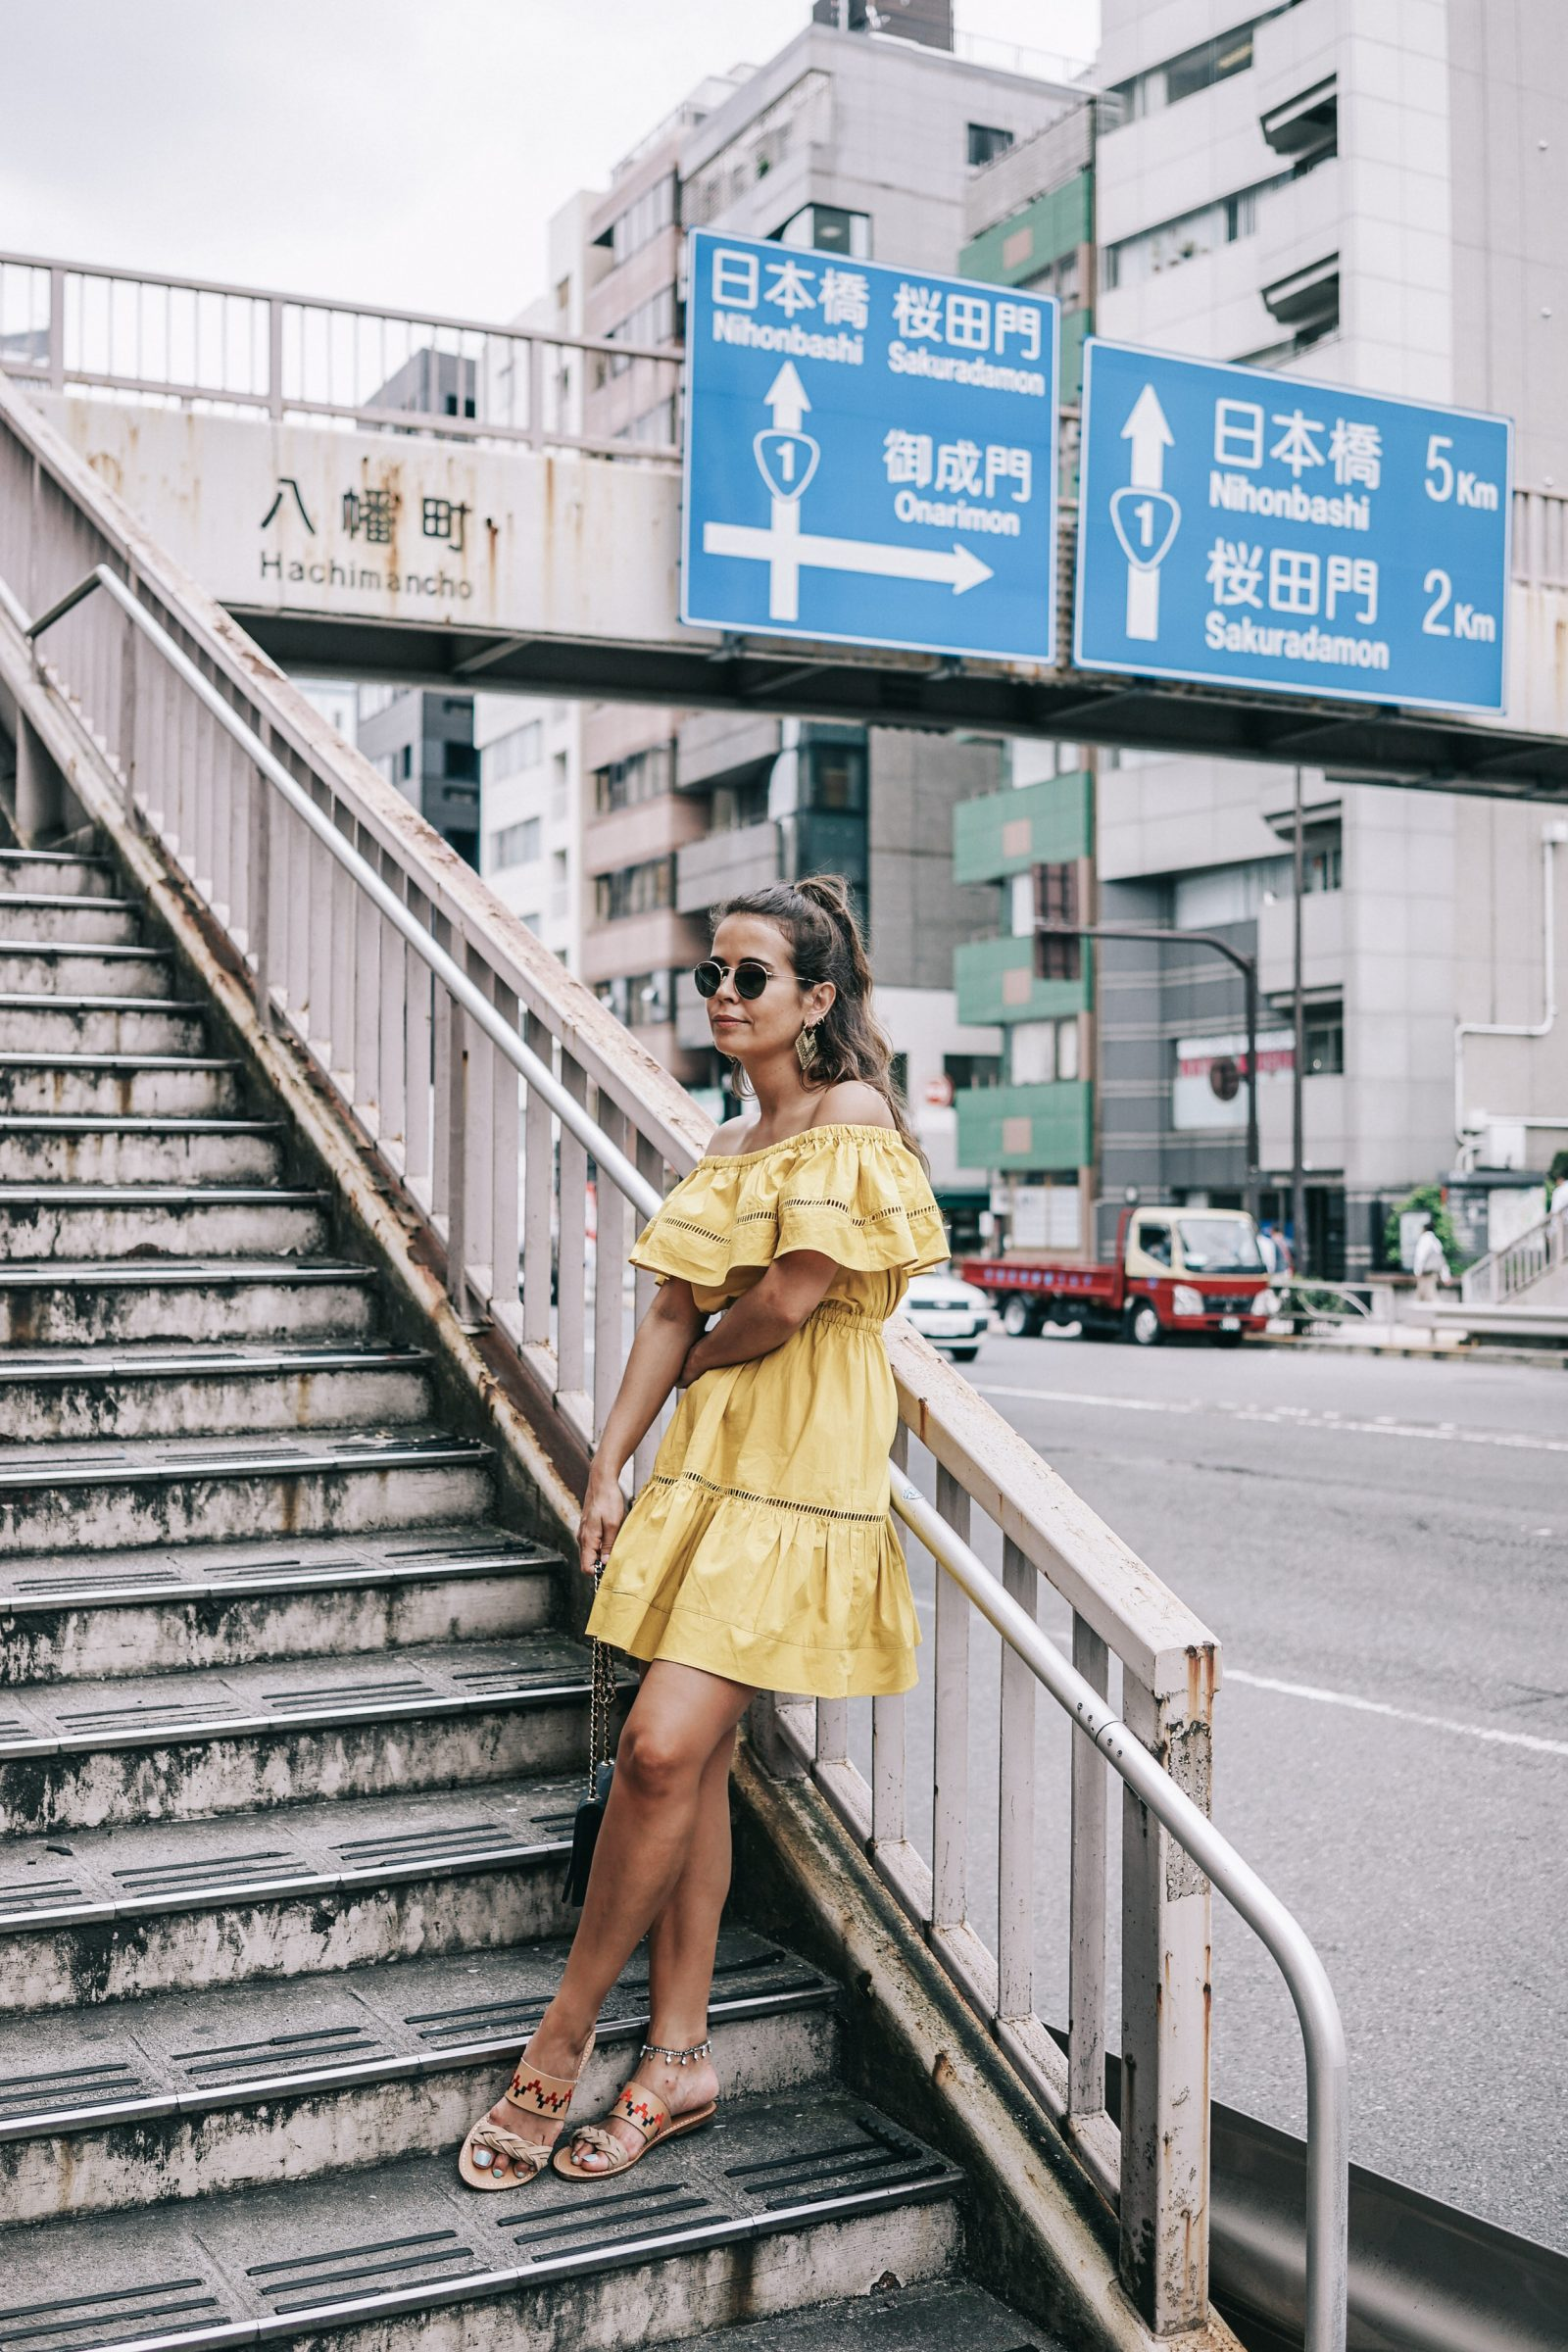 tokyo_travel_guide-outfit-collage_vintage-street_style-off_the_shoulders_dress-mustard_dress-soludos_sandals-chanel_vintage-bag-vintage_stores-34